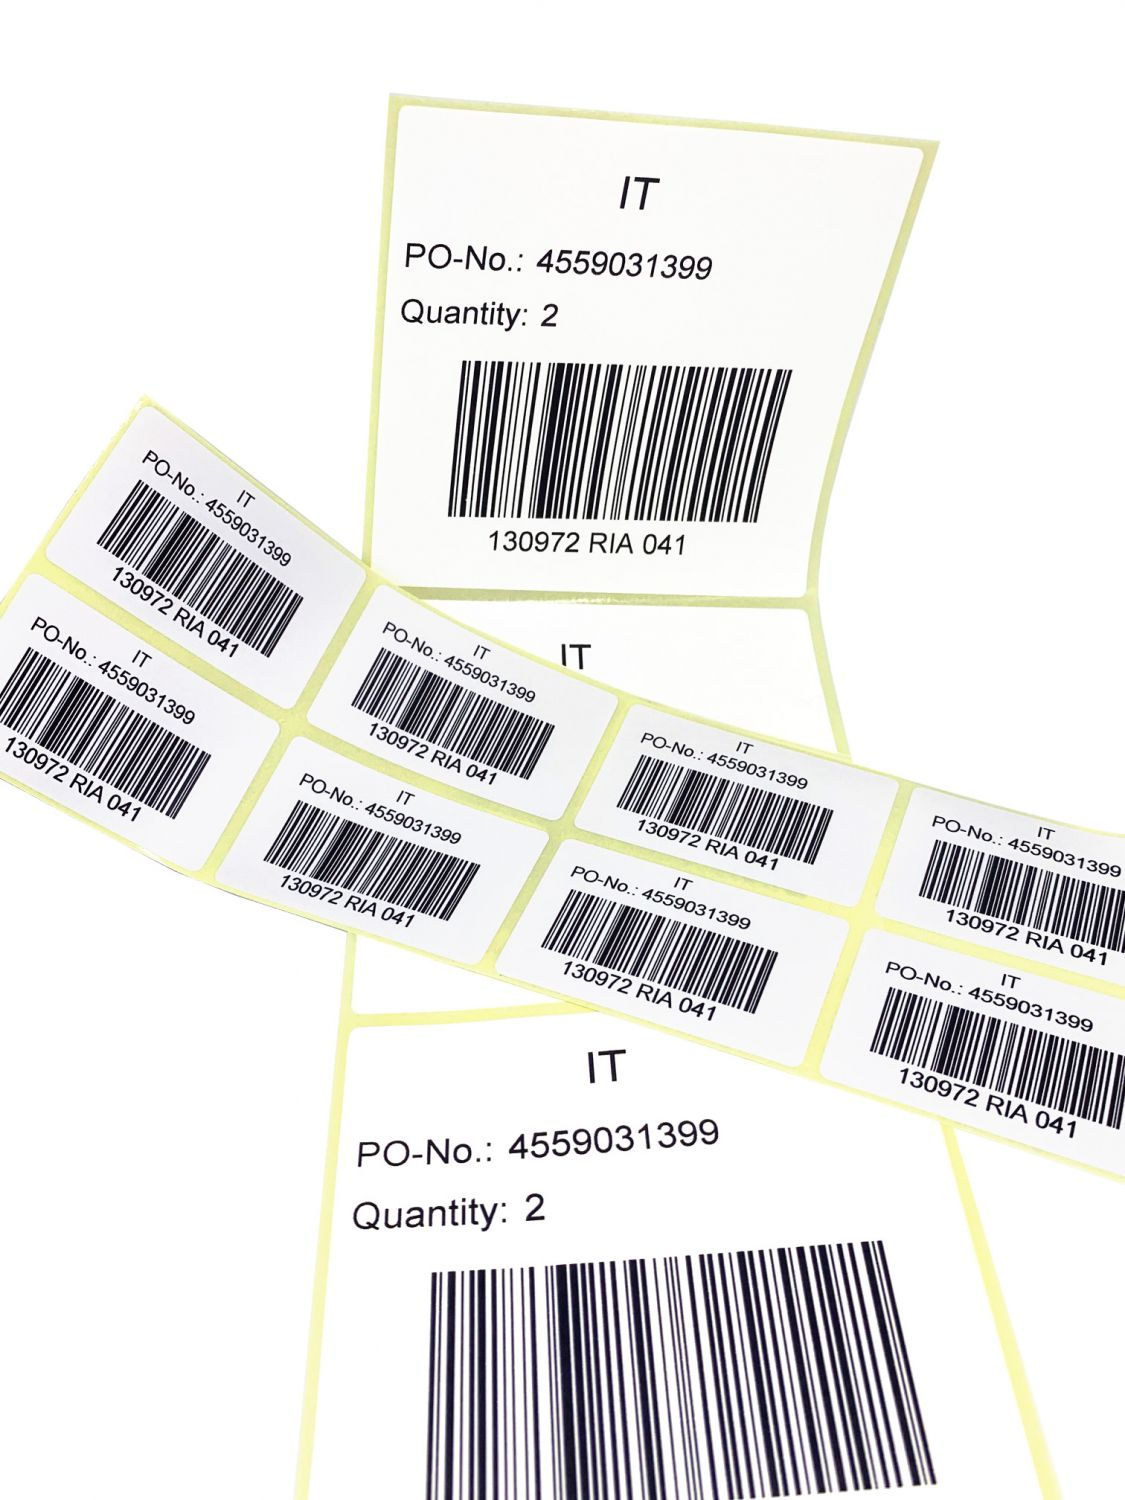 Self-adhesive labels printed by QVC customer